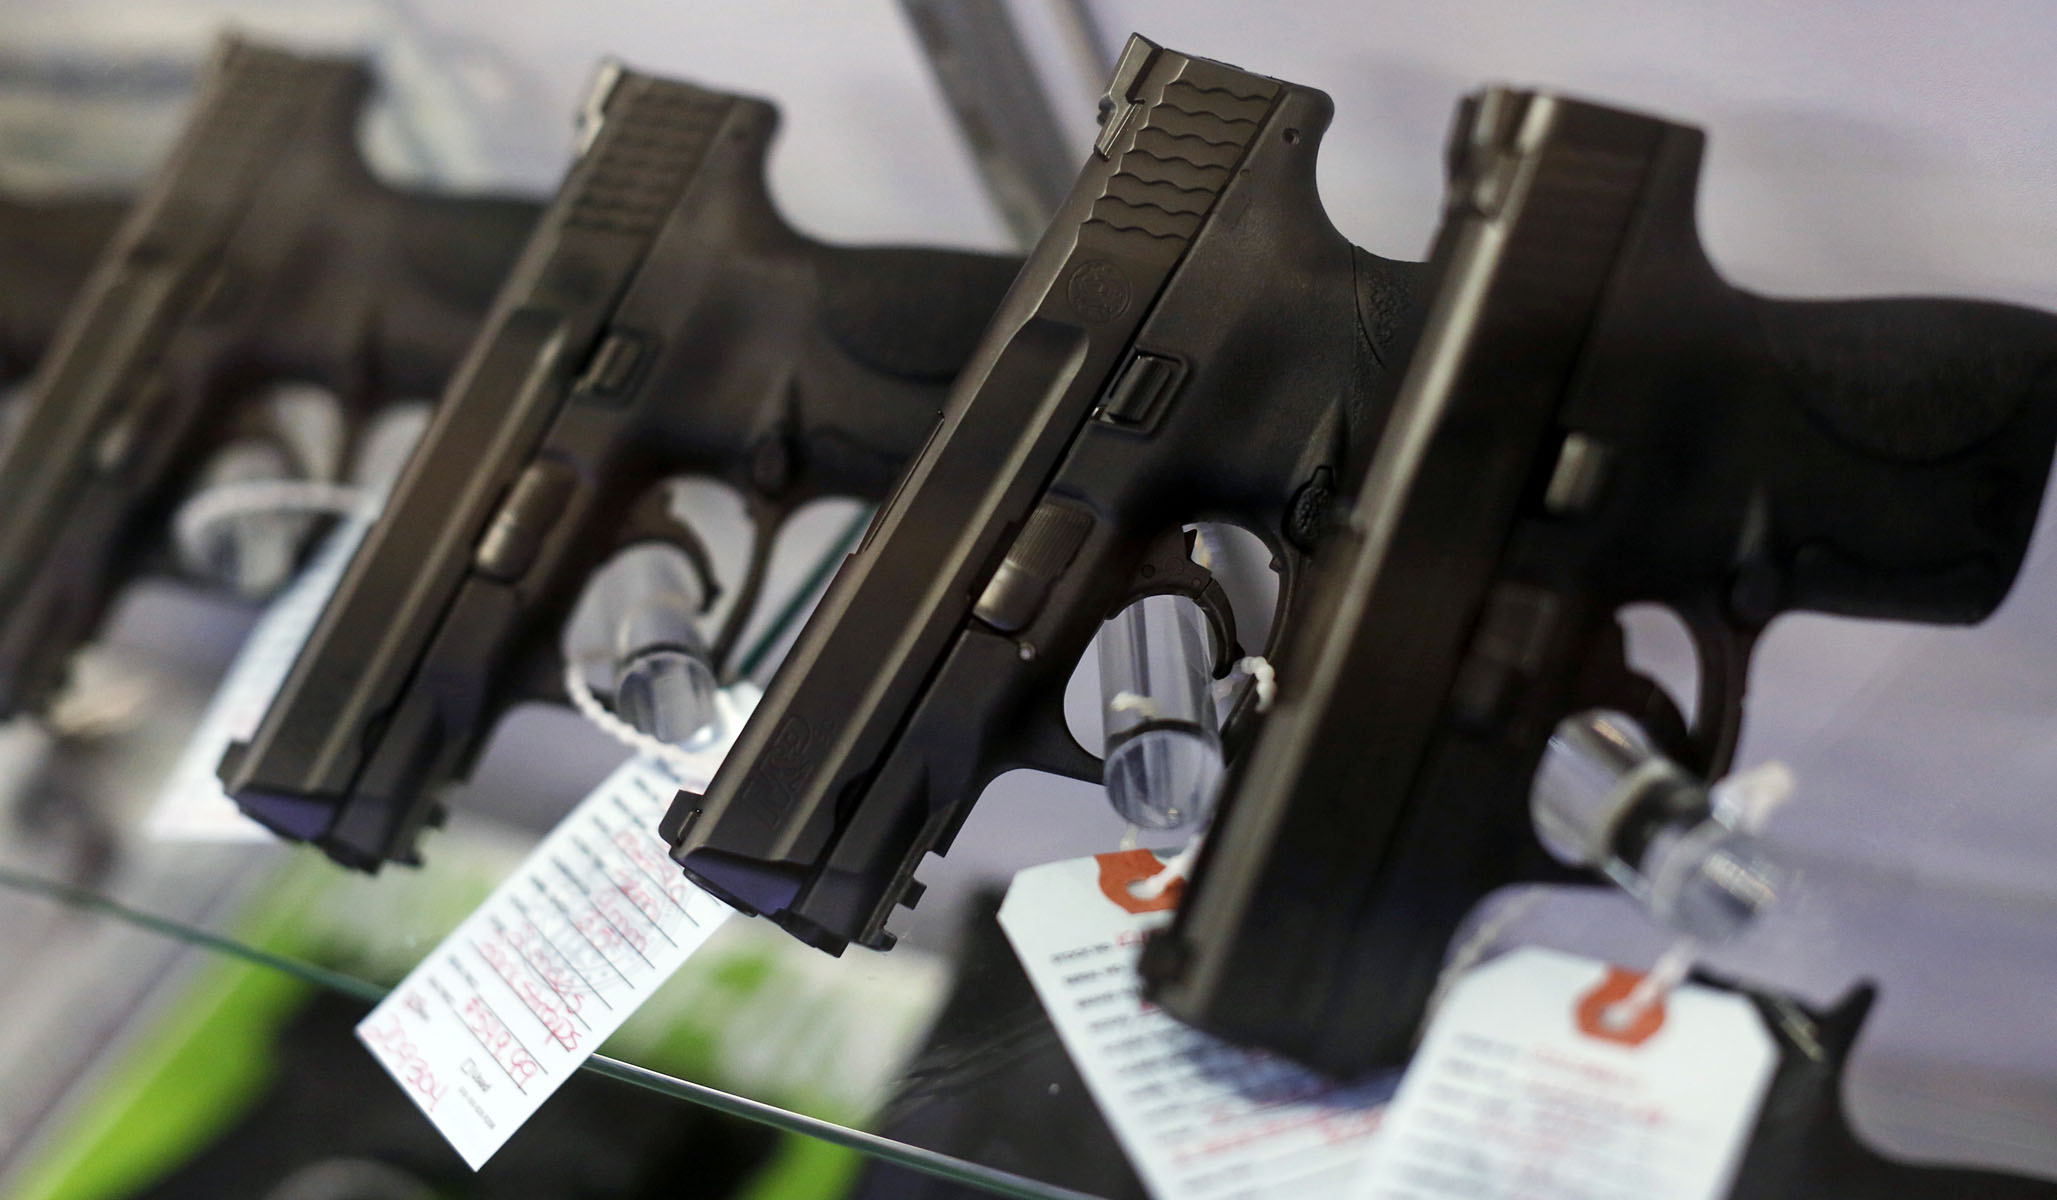 Credit Cards and Guns: One Last Point